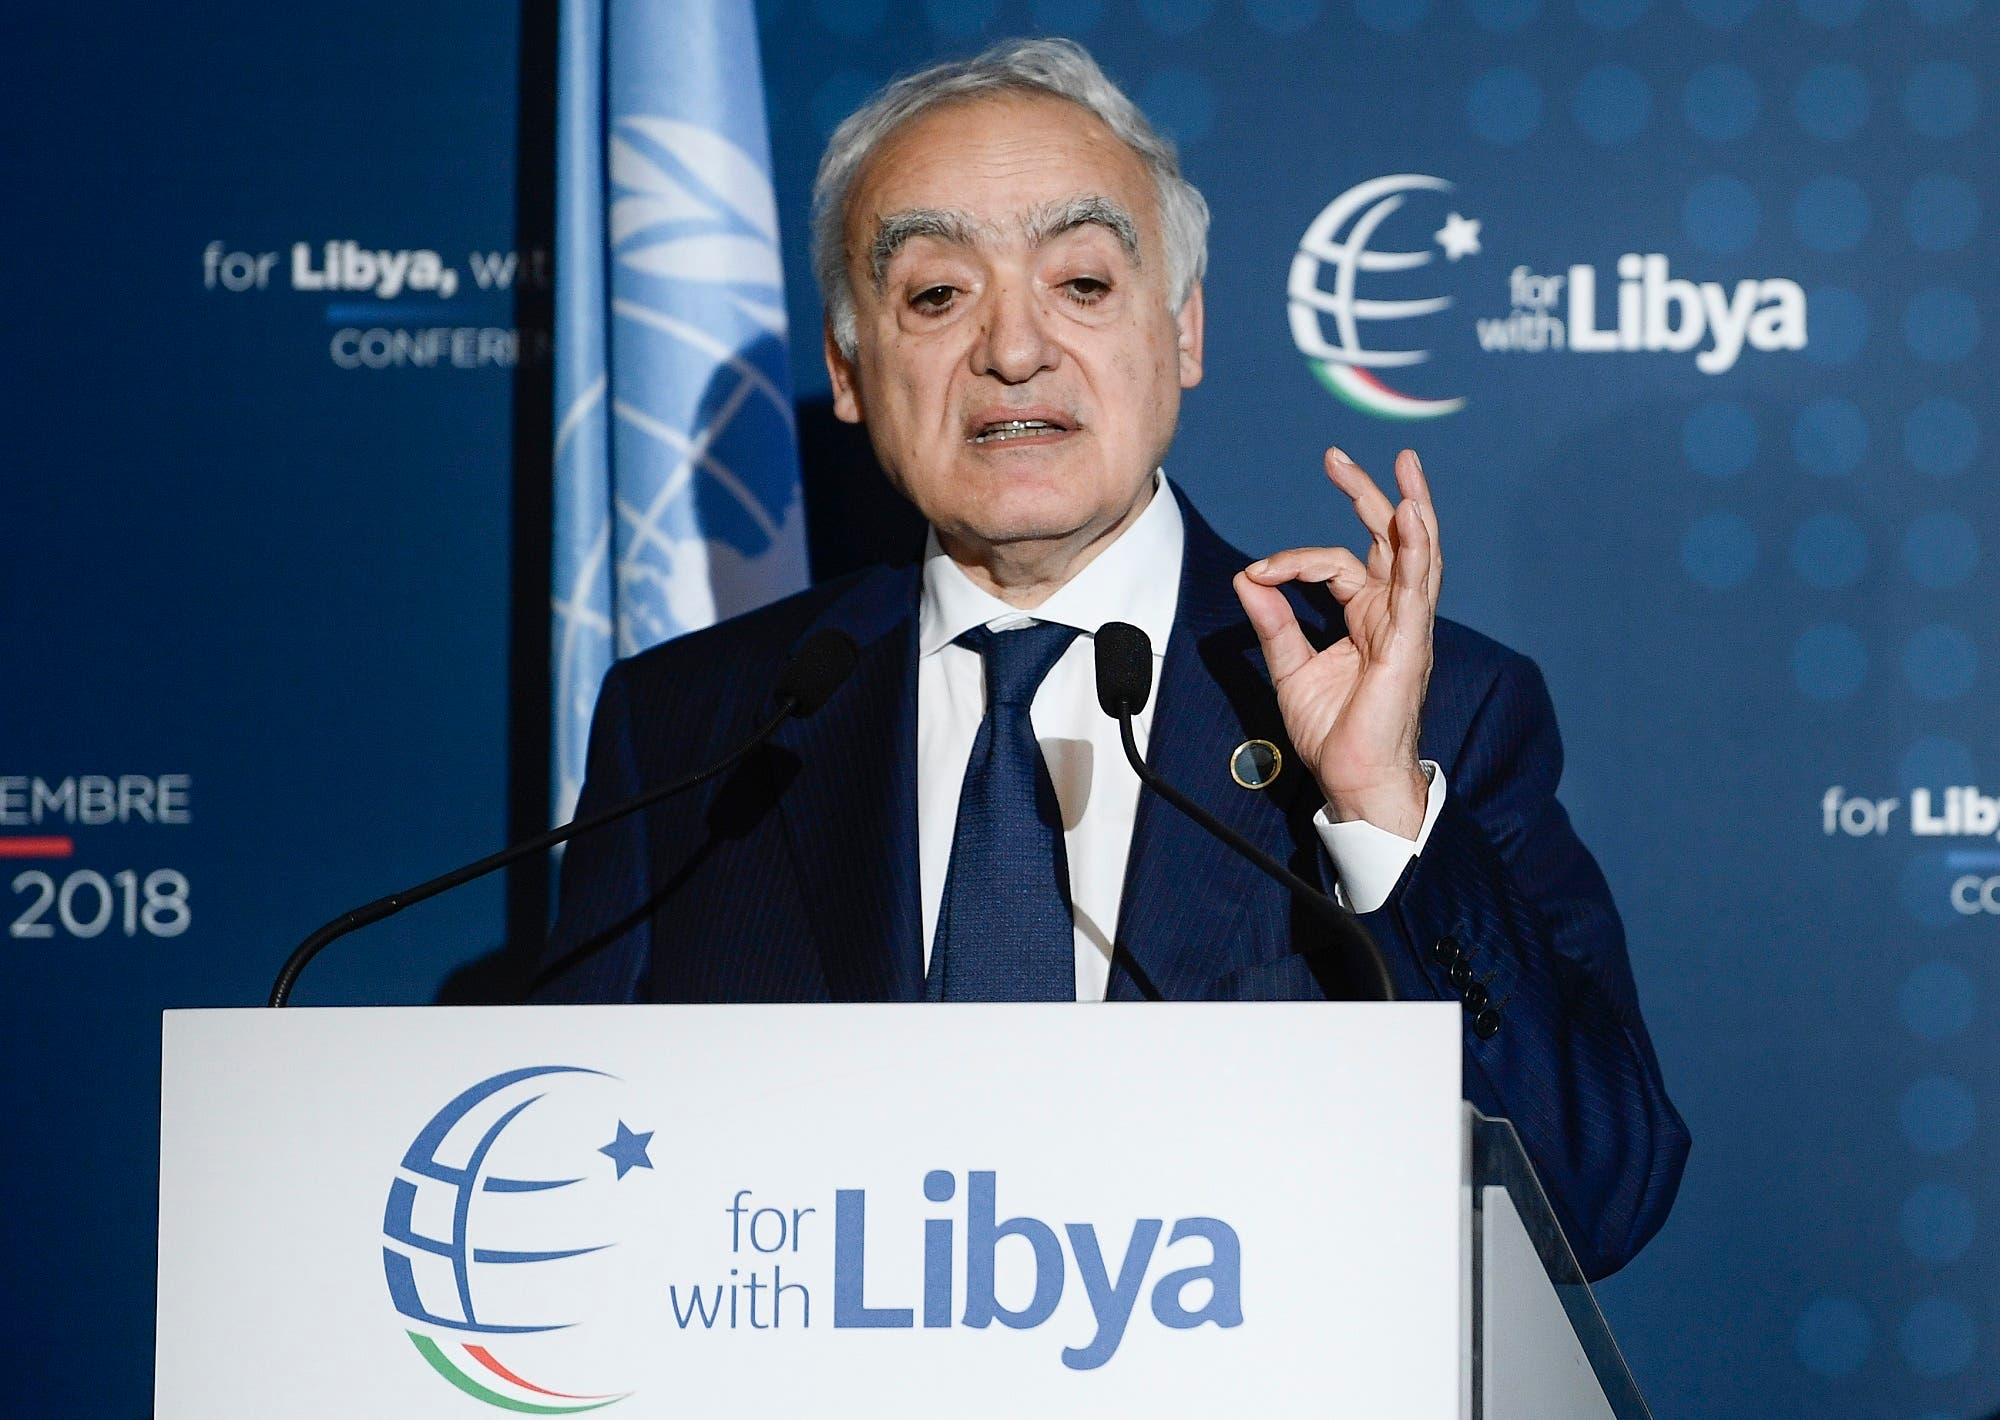 Ghassan Salame addresses a press conference following an international conference on Libya in Palermo on November 13, 2018. (AFP)